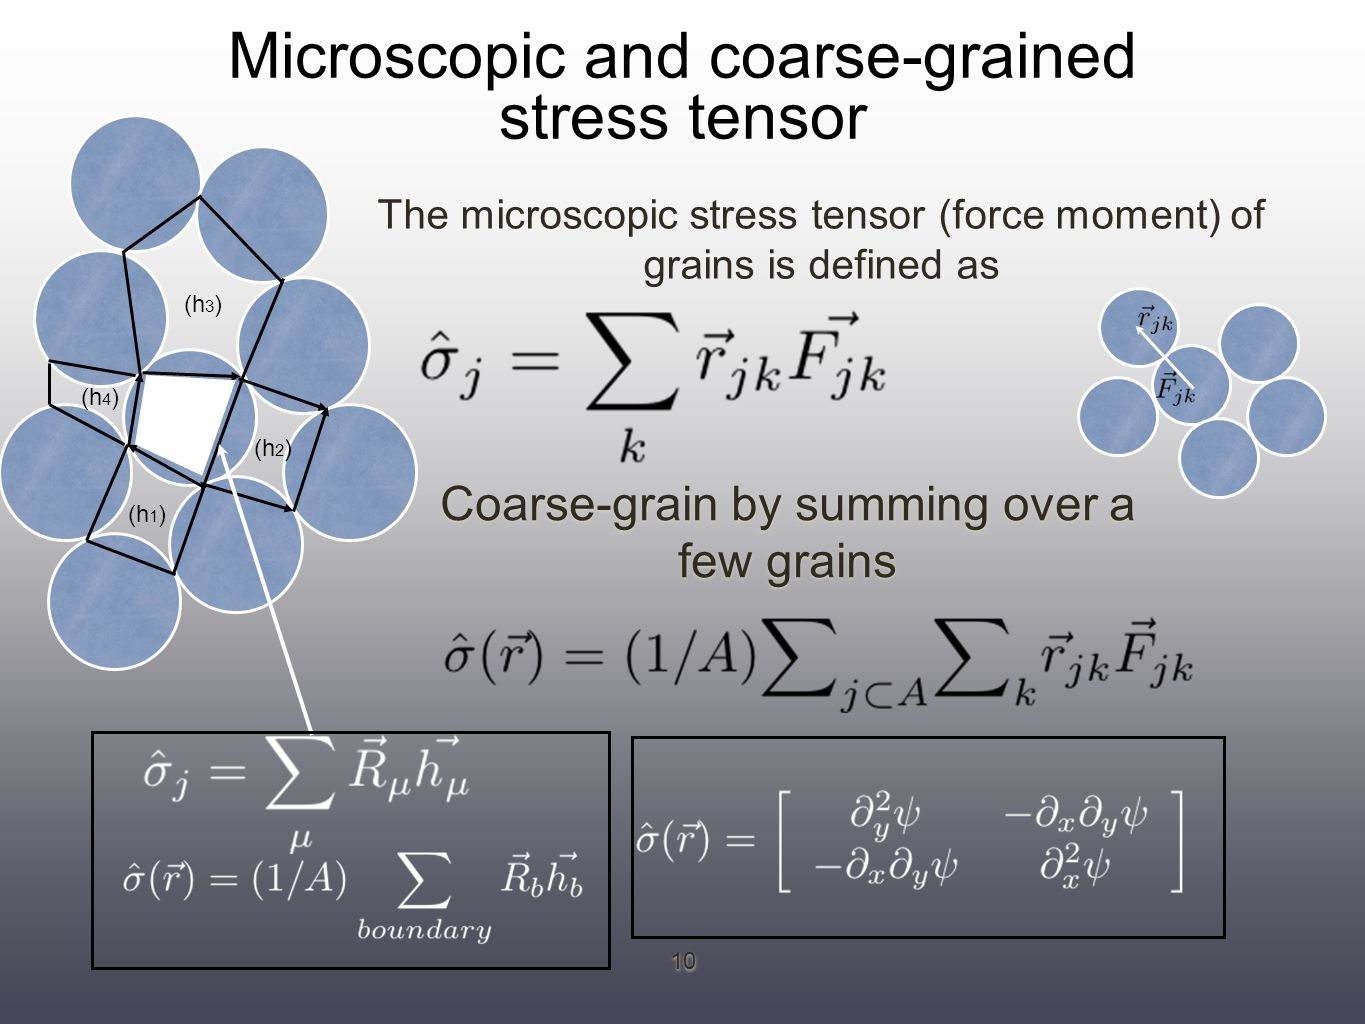 Microscopic and coarse-grained stress tensor